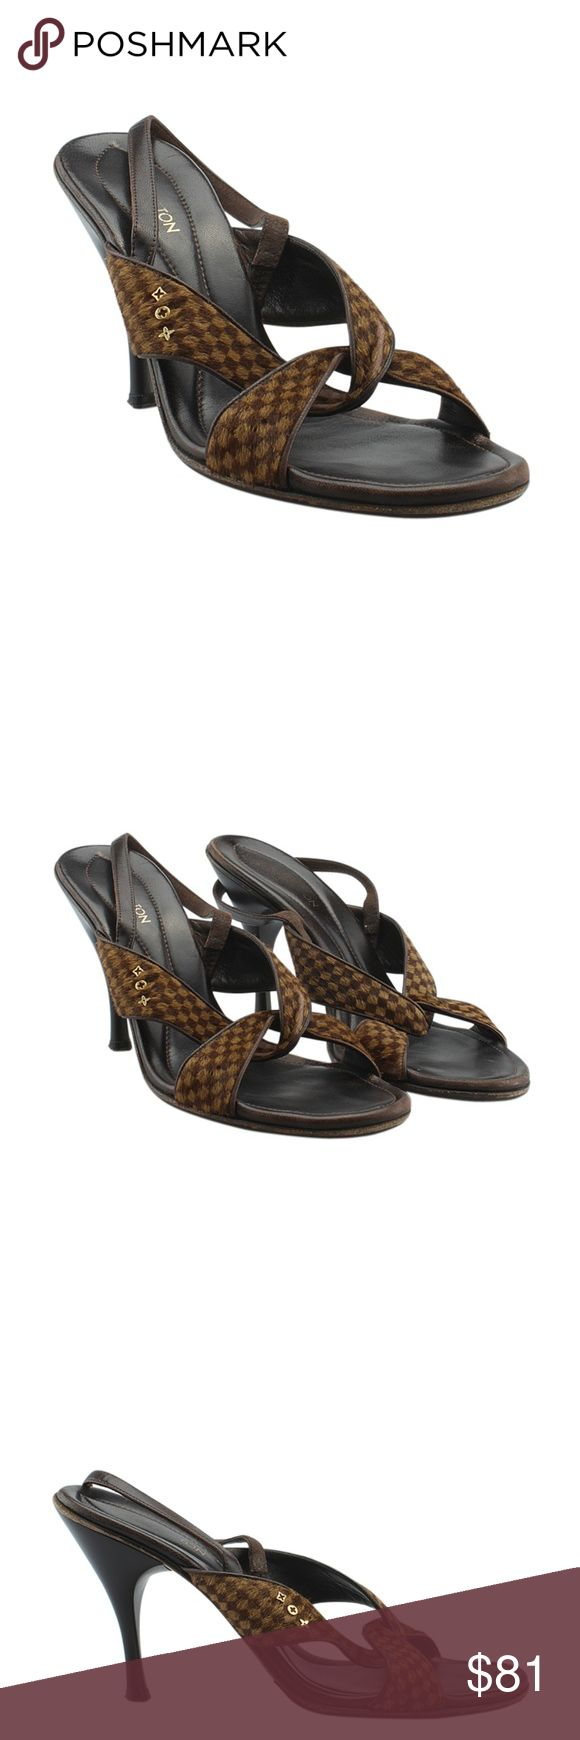 Louis Vuitton Damier Ebene Sandals (141905) These Louis Vuitton sandals feature: •Exterior bottom soles show wear & have been re-soled •Has worn heel lifts •Leather uppers show scuffing/wear •Cross straps show missing & faded pony hair in various locations •Slingback straps are worn •Interior shows scuffing/wear  •We have converted these from a European 41 to a US 11 •Exterior Condition: Gently Used •Interior Condition: Gently Used •Material: Leather/Pony Hair •Origin: Italy •Hardware…